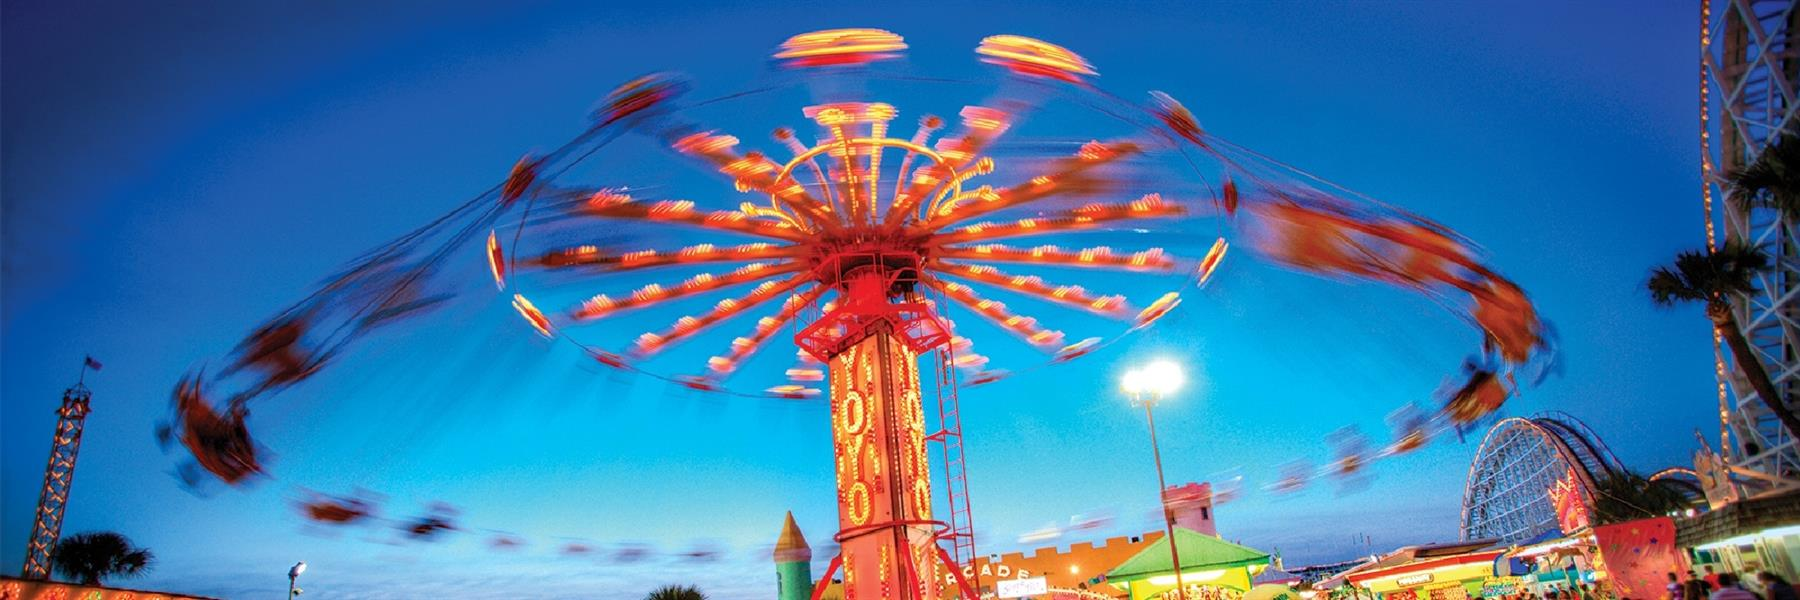 Family Kingdom Amusement Park in Myrtle Beach, South Carolina